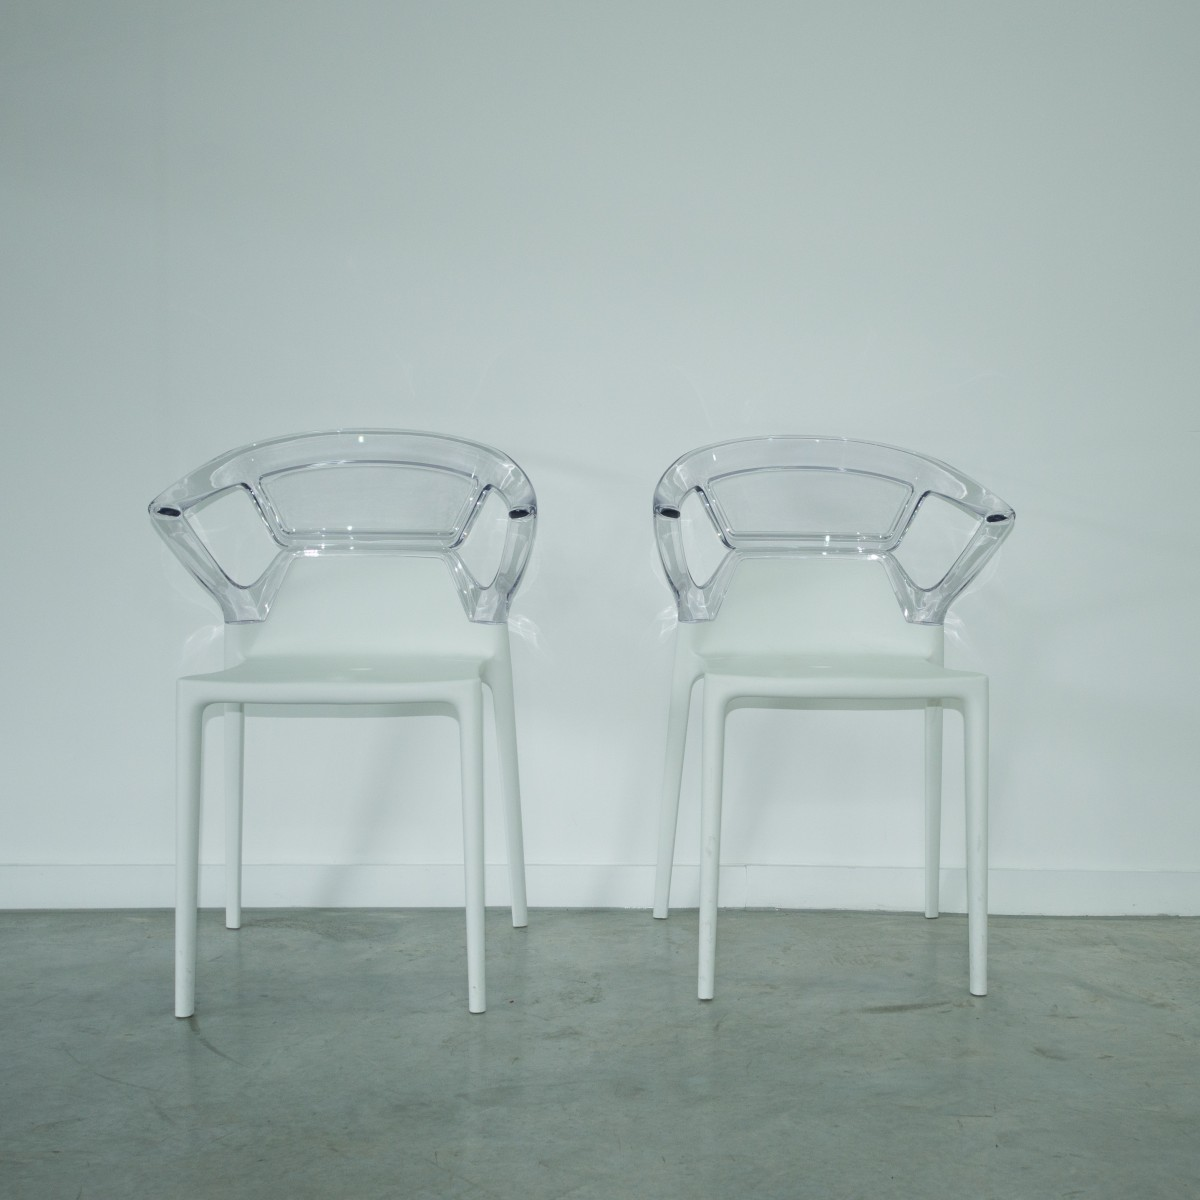 Two clear chairs sit side by side against a white wall.